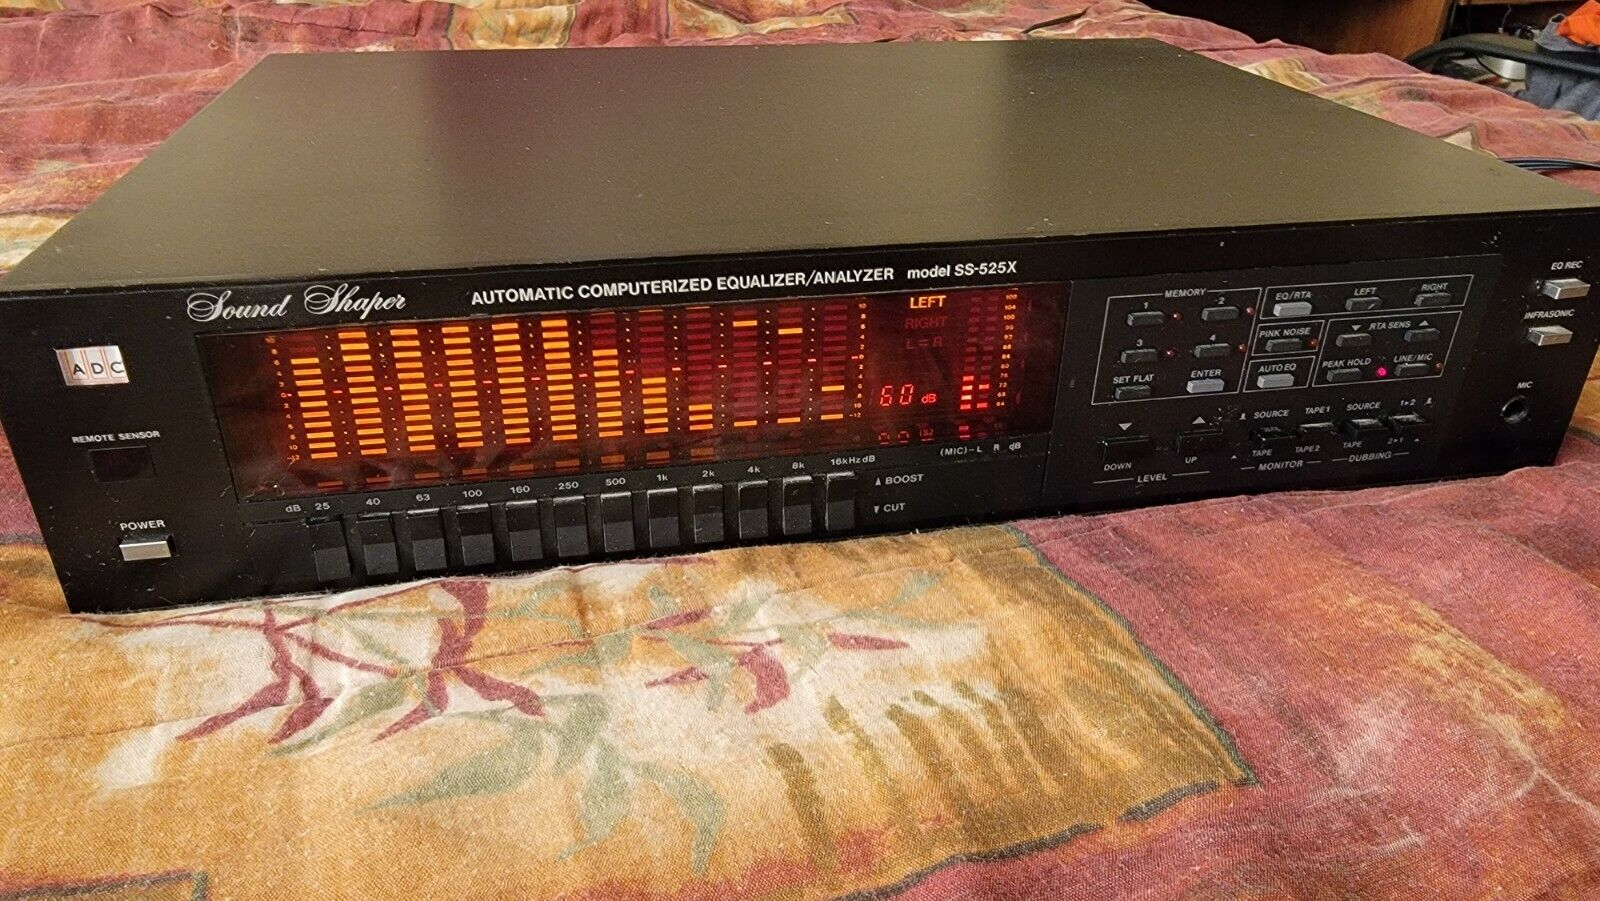 ADC Sound Shaper SS-525X equalizer spectrum analyzer no remote good shape . Buy it now for 399.00